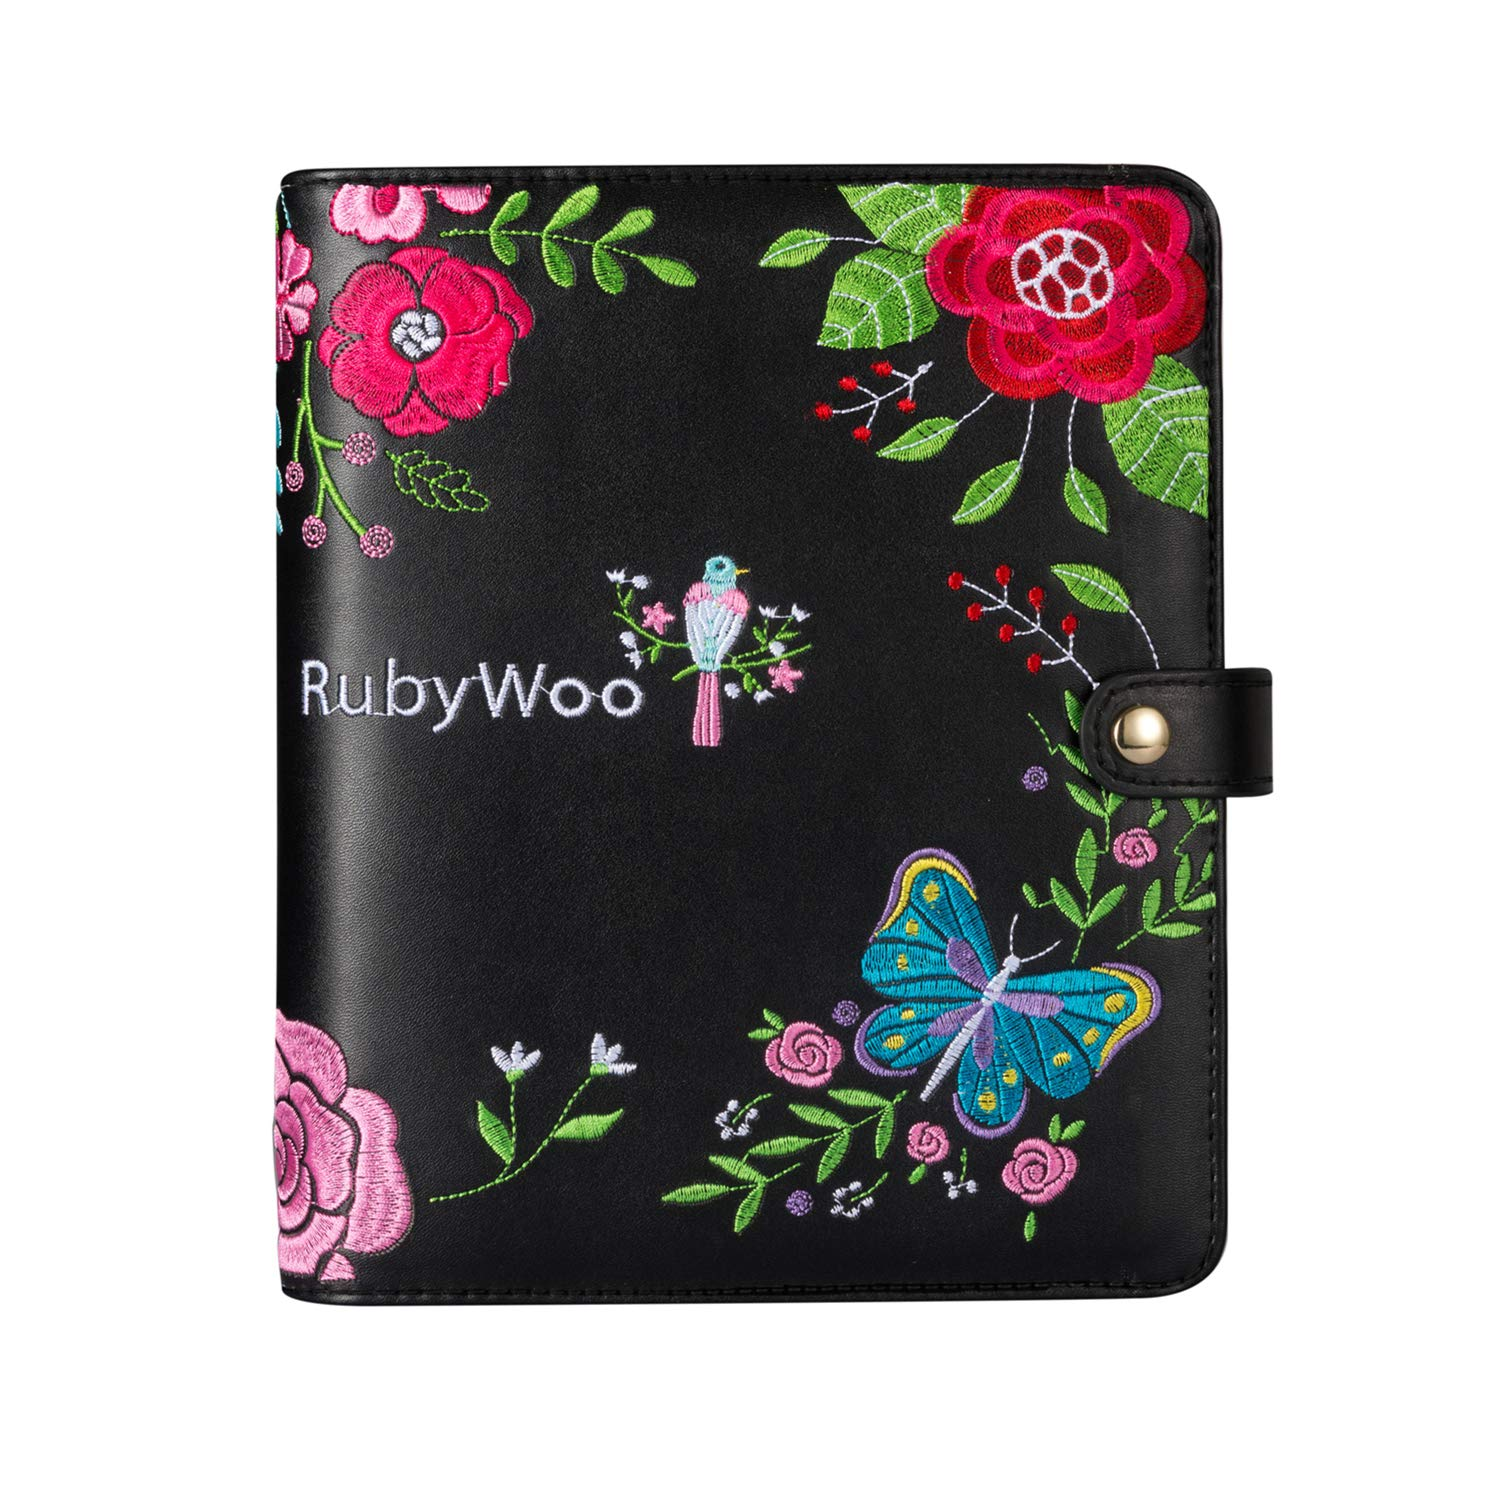 Rubywoo Journal Travel Composition Notebook Round Ring Binder Button Filofax Planner Organiser Personal Memo Calendar 2020/2021 Premium Thick Paper (A5, Black Embroidery)